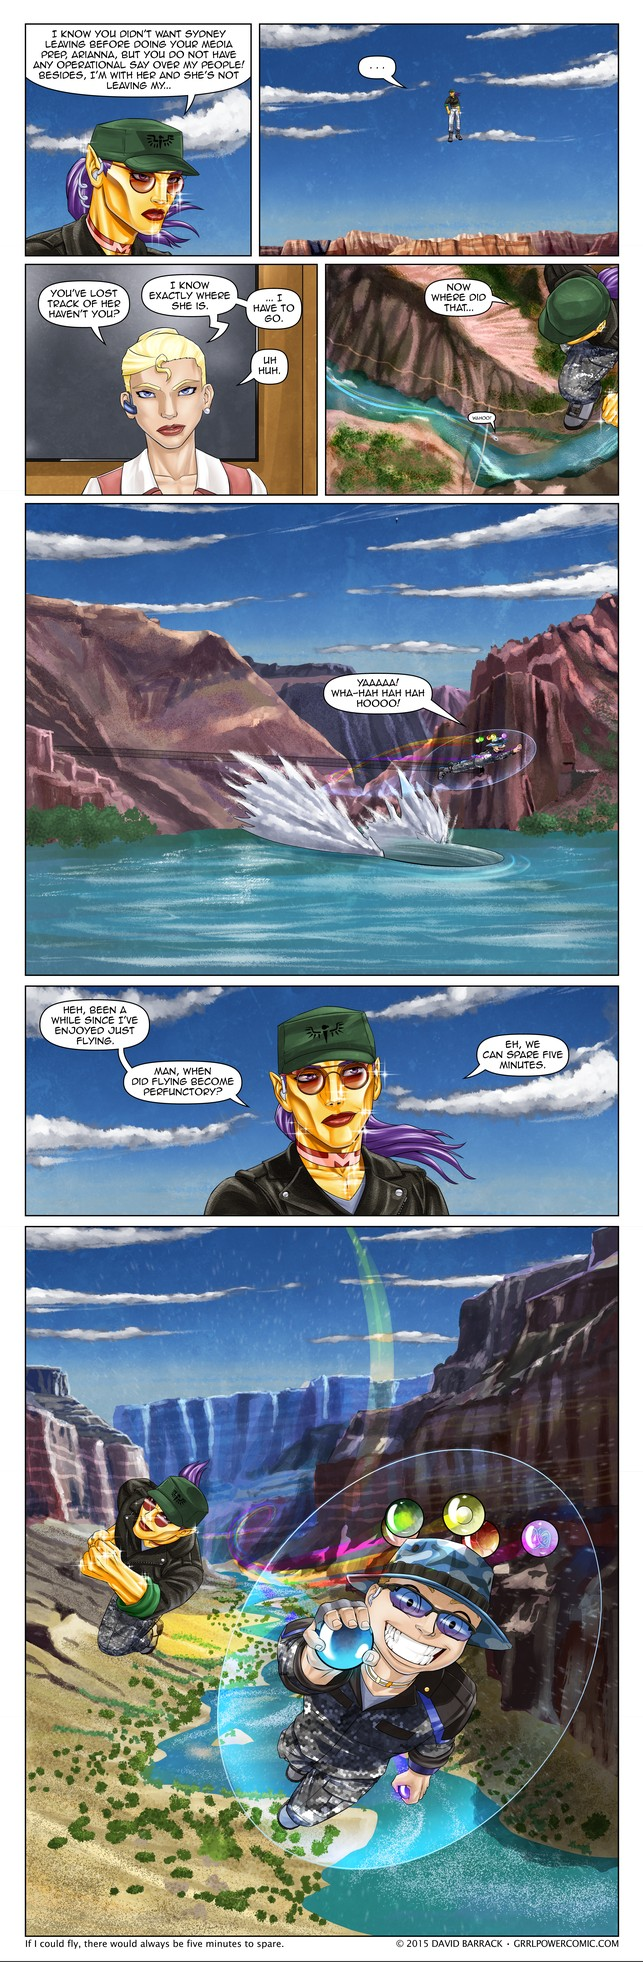 Grrl Power #355 – Aerial areal detour